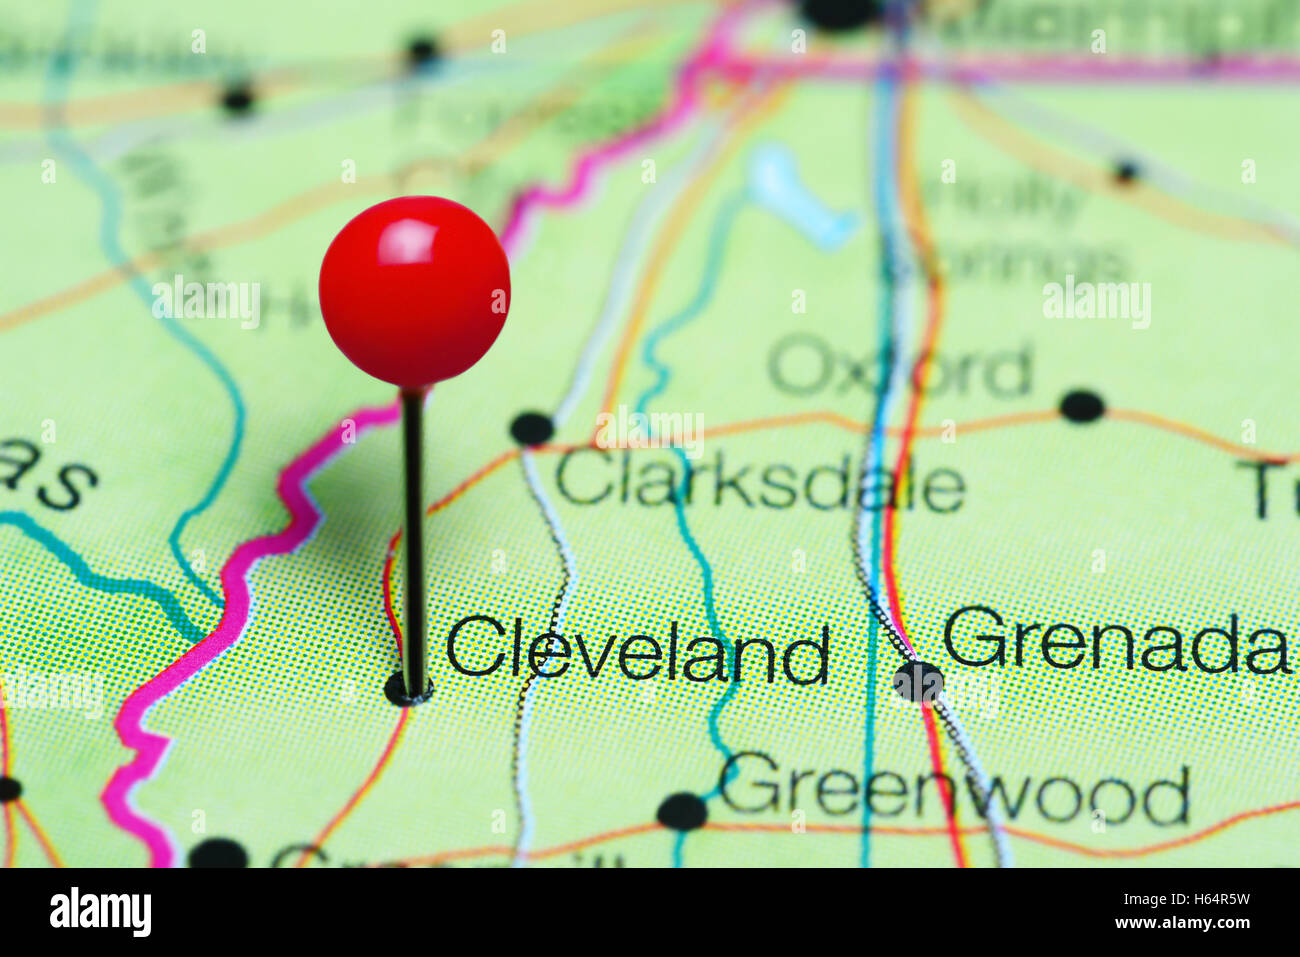 Cleveland pinned on a map of Mississippi, USA Stock Photo: 124266517 on